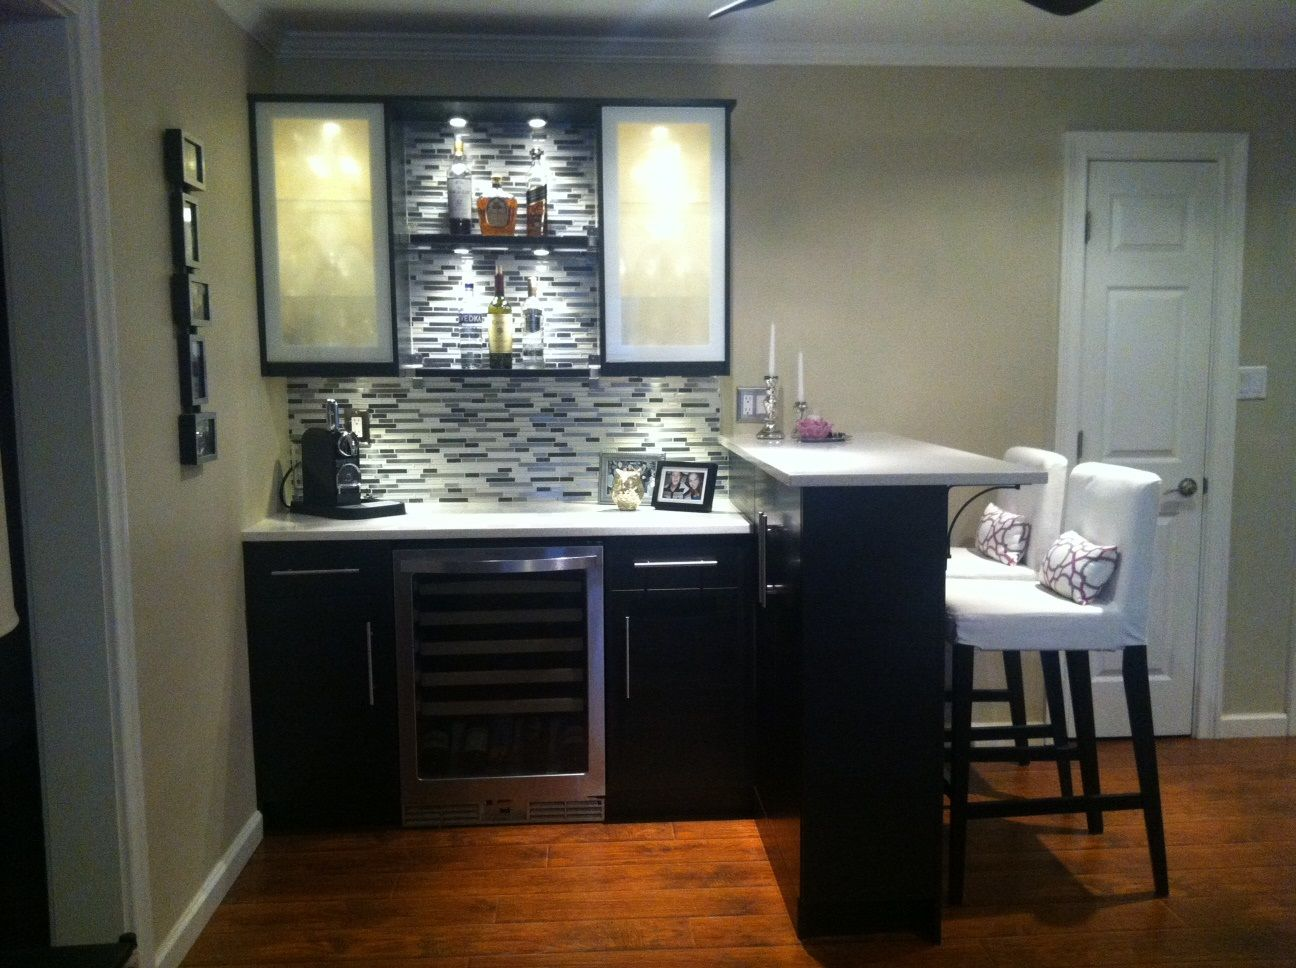 Paul Wine Bar- Lowe's Back-splash, Home Depot Granite